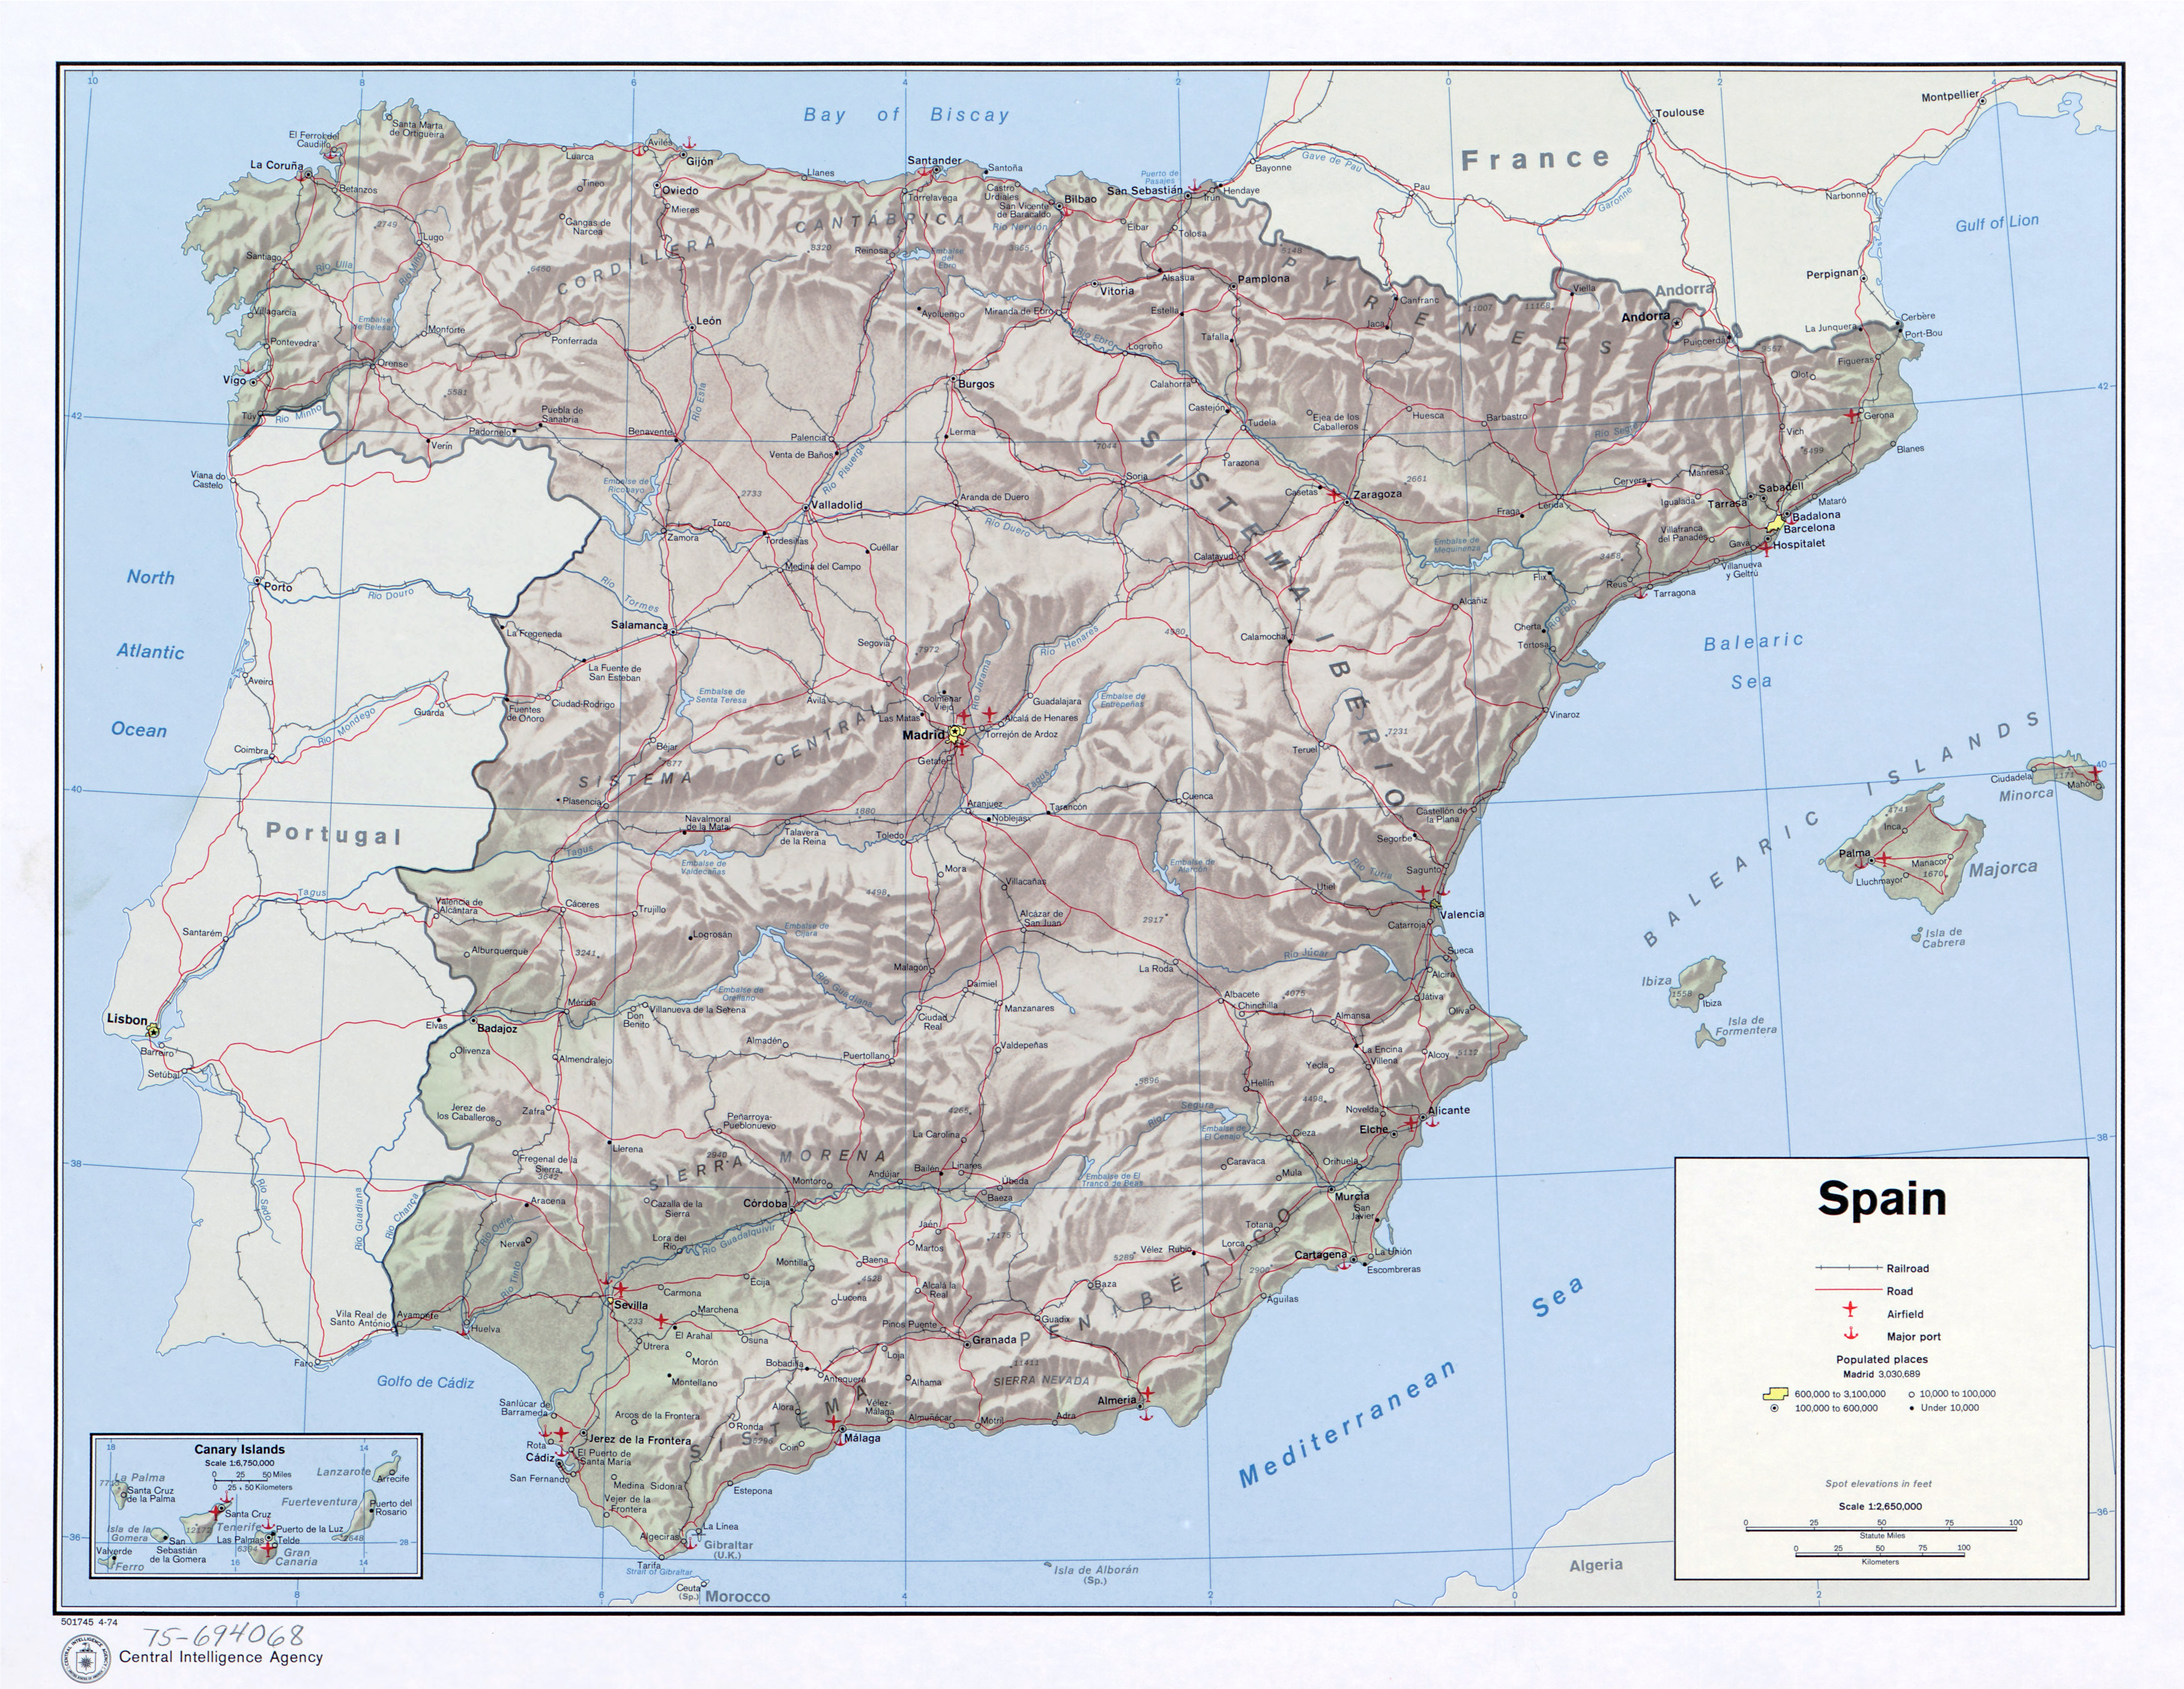 Large scale political map of Spain with relief roads railroads